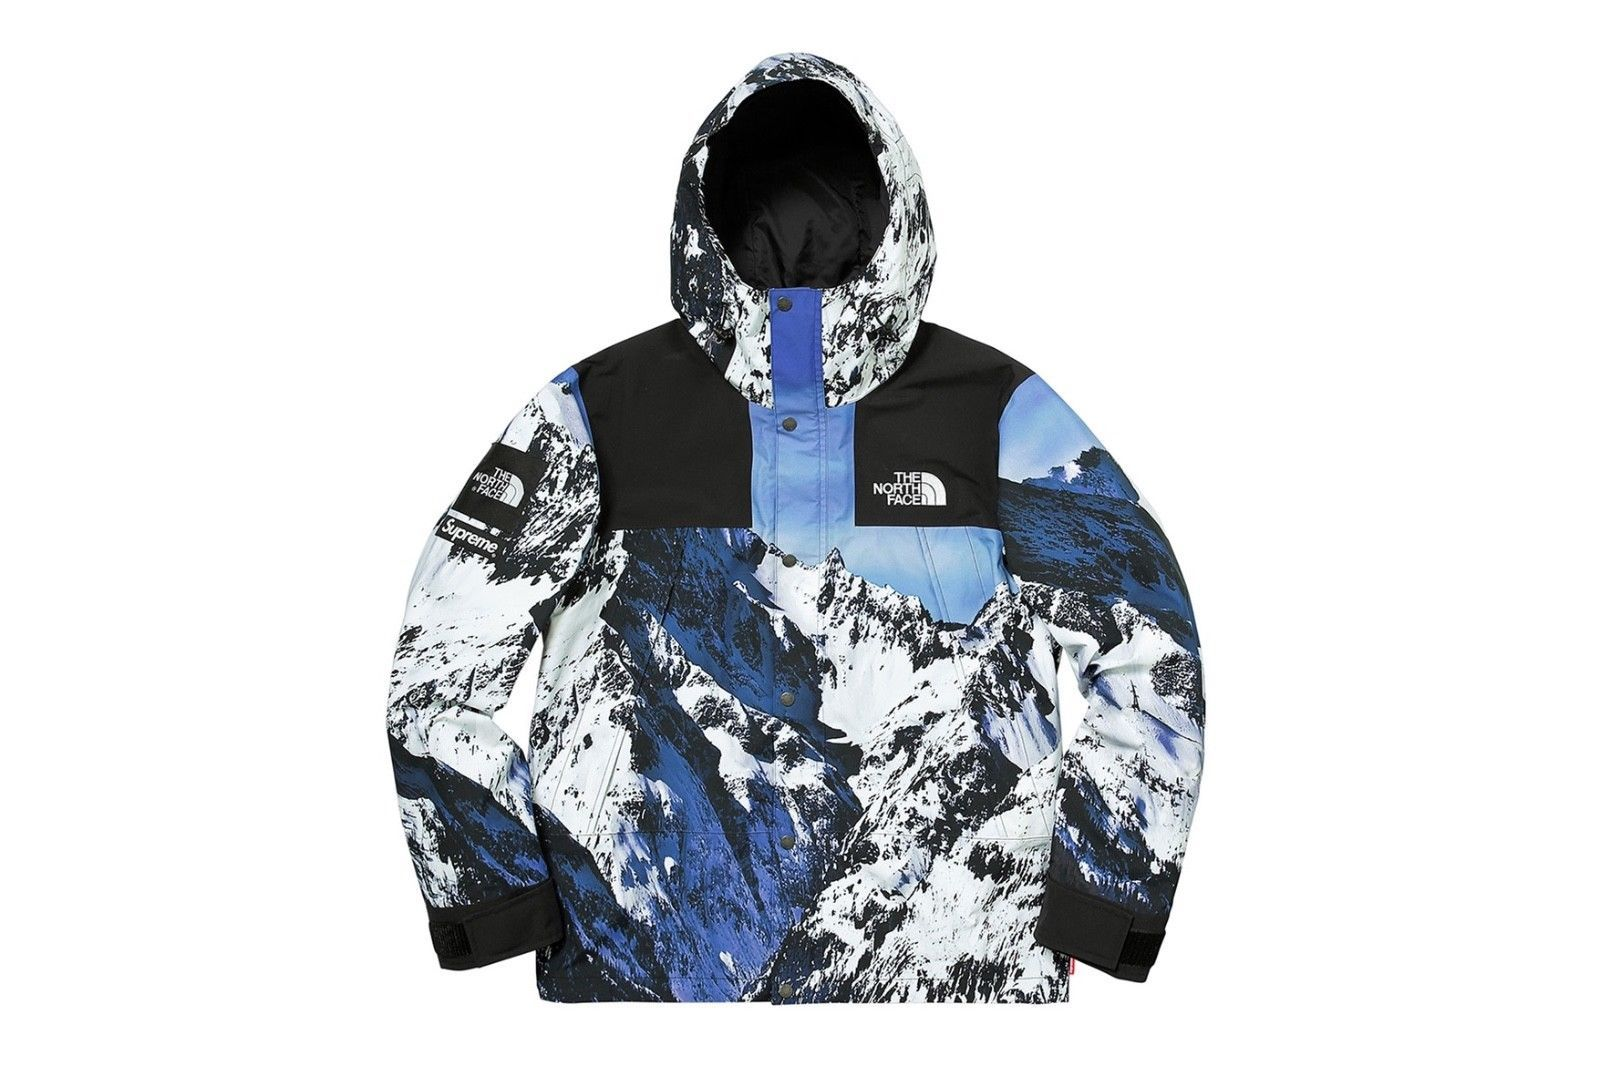 Supreme X The North Face Mountain Parka 2017 Size Small New Jacket Tnf Kanye West Style Dude Clothes The North Face